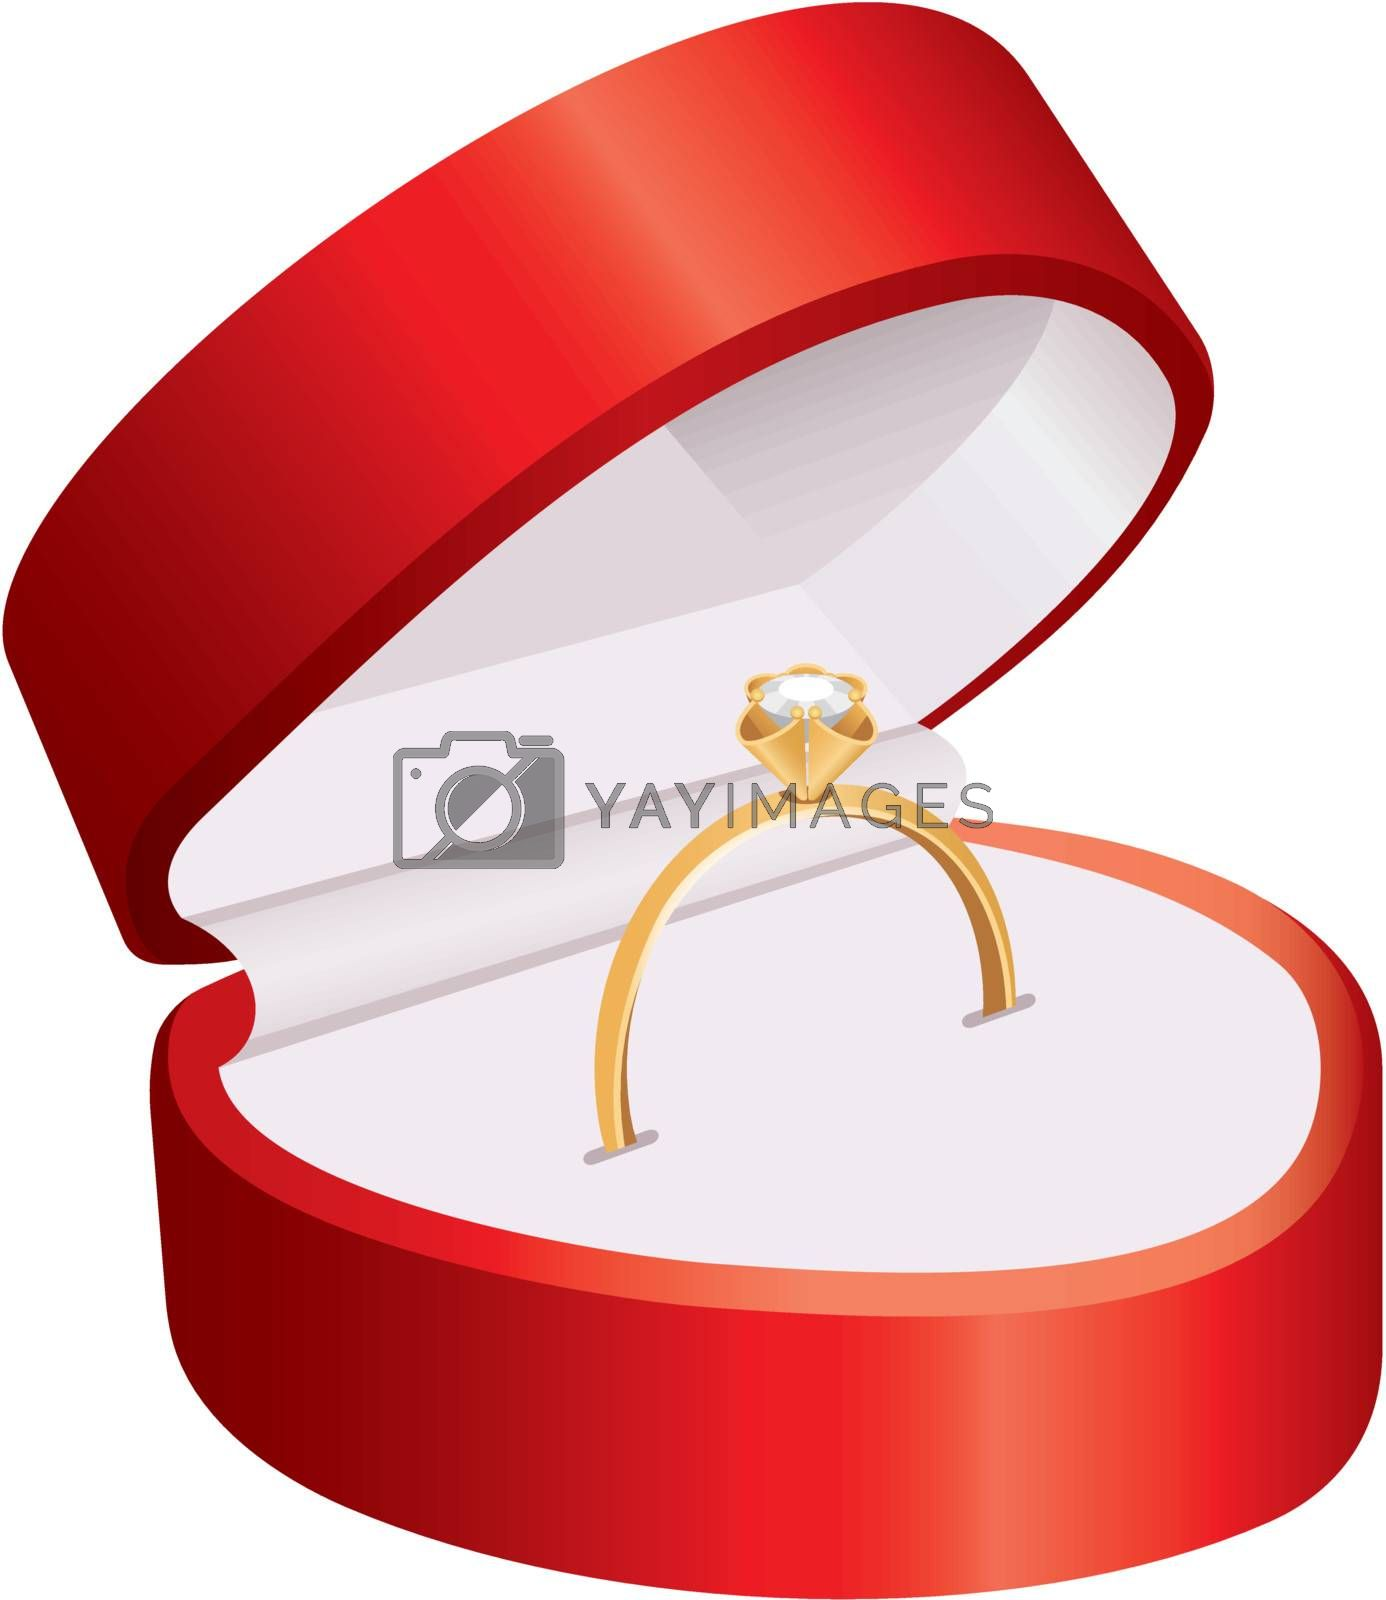 Ring in a red box on a white background.